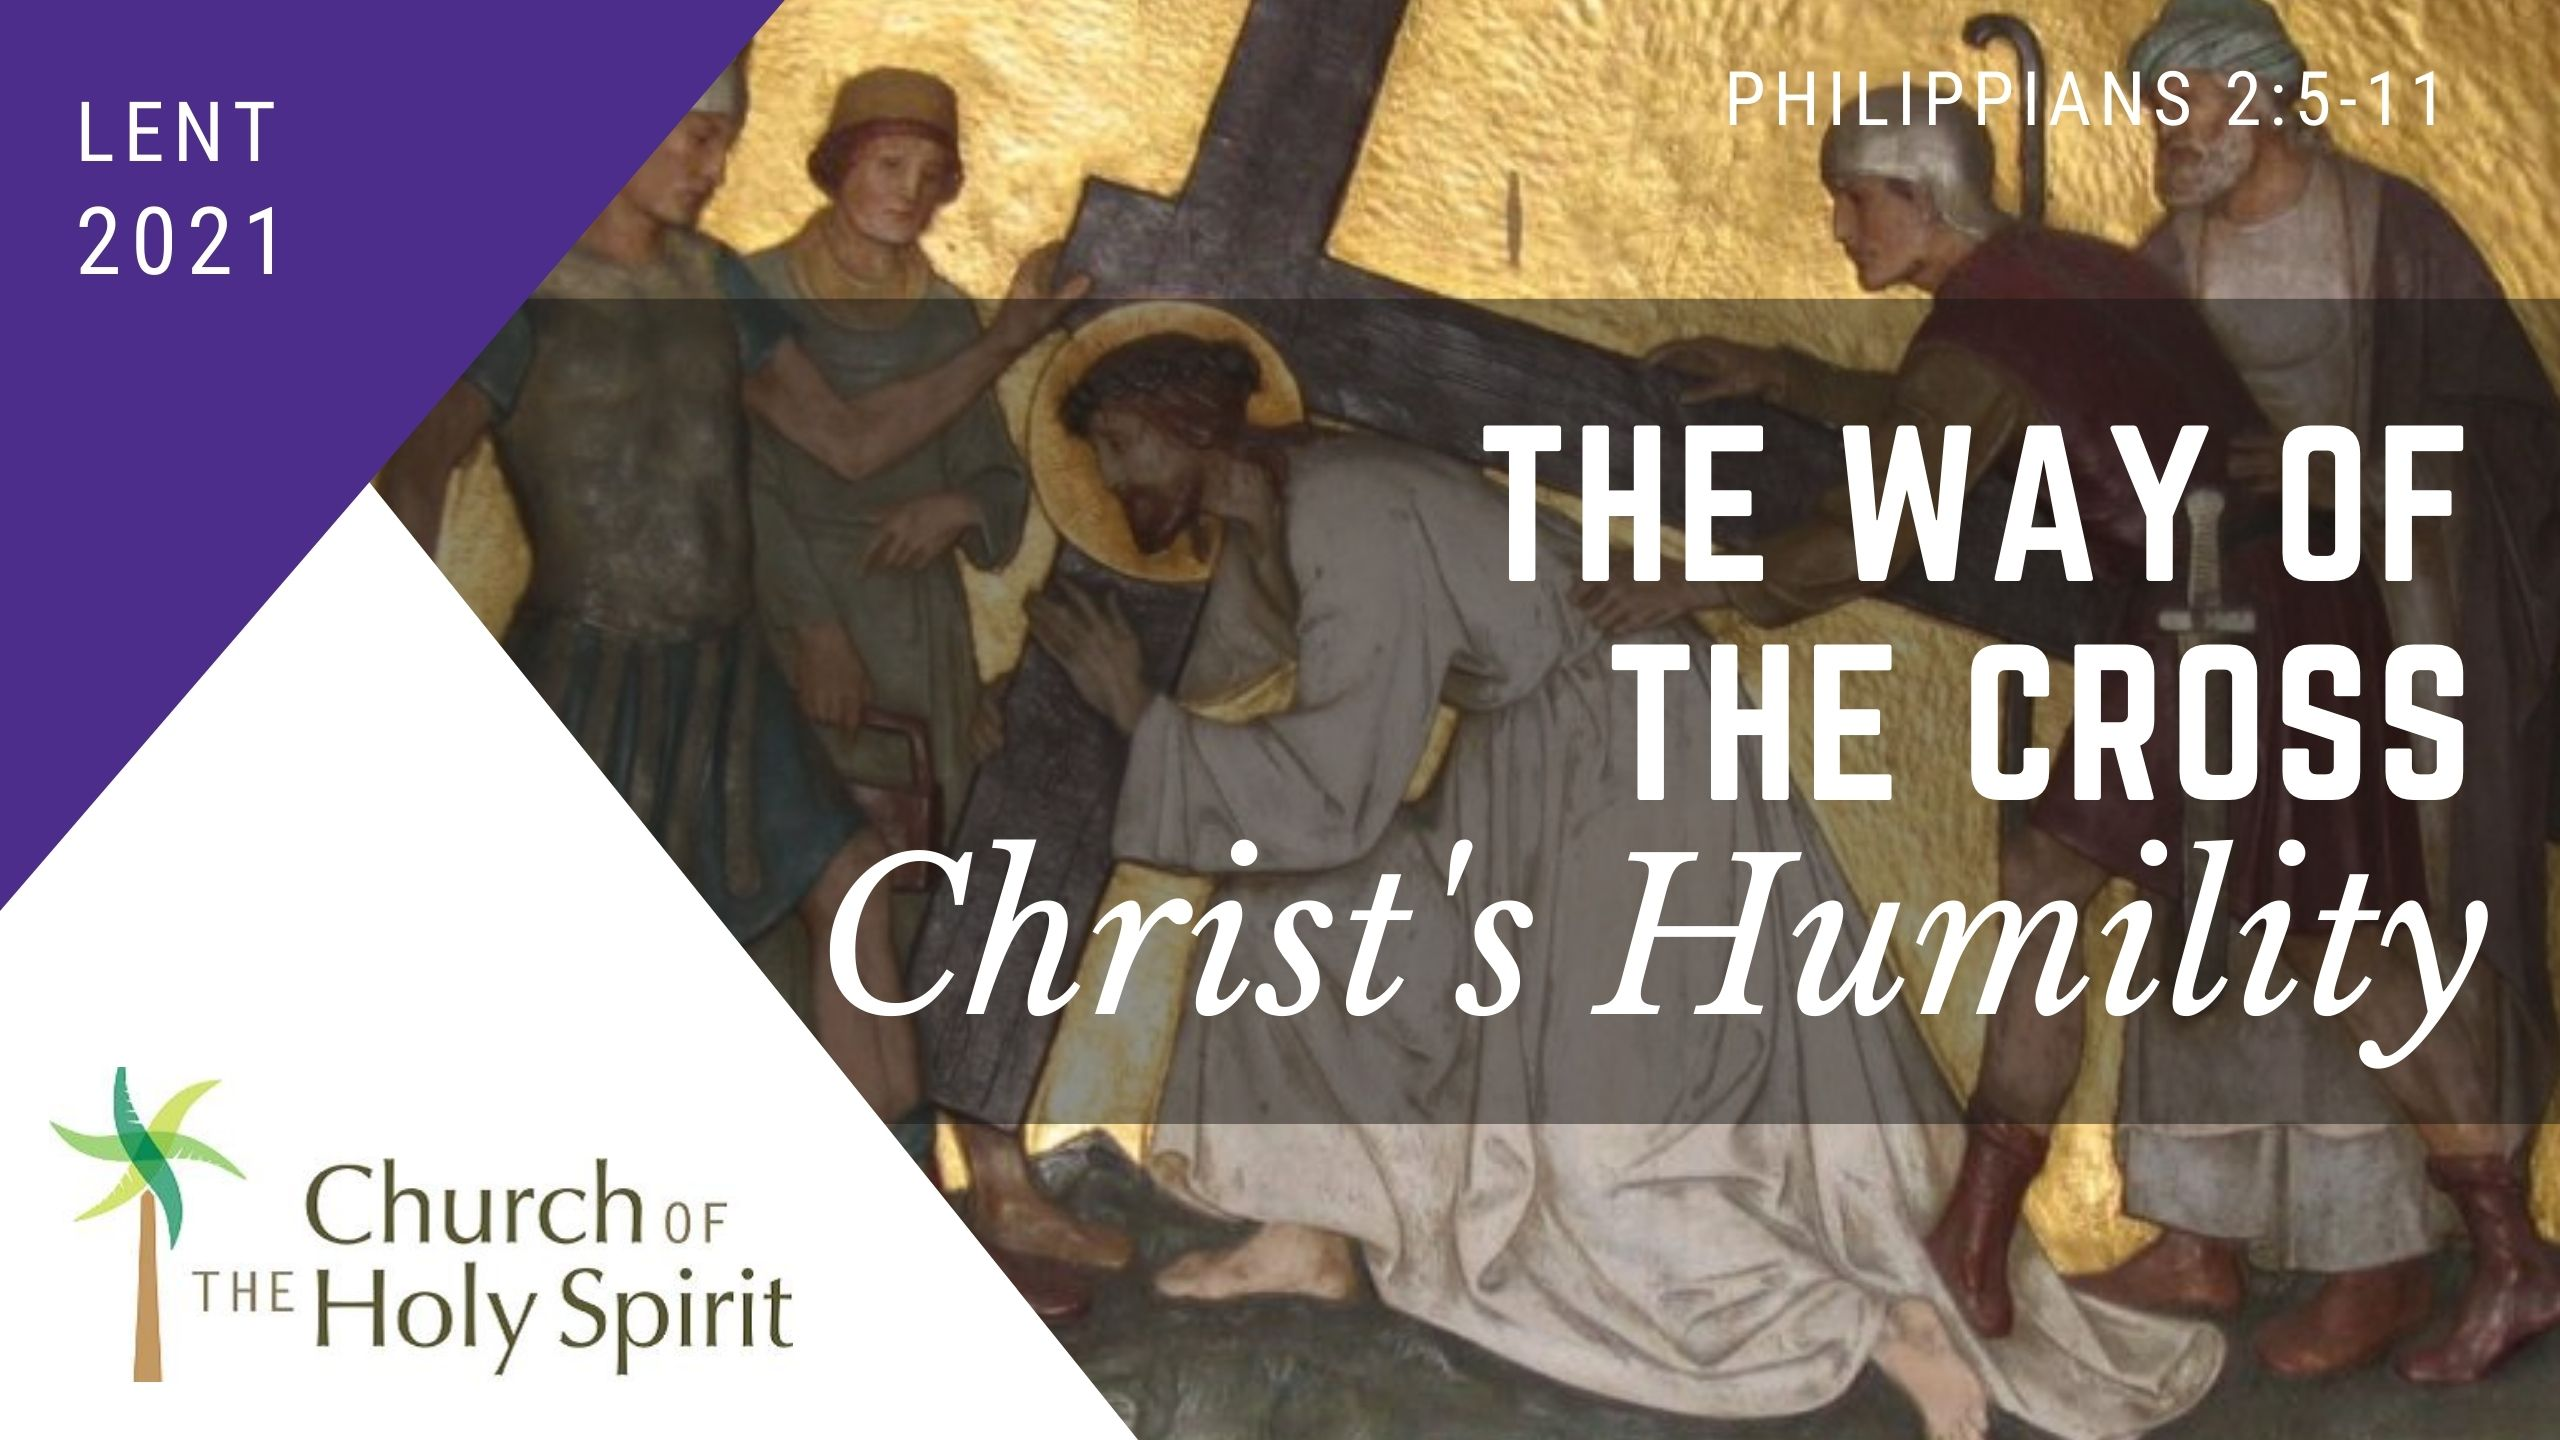 The way of the cross, Christs humility